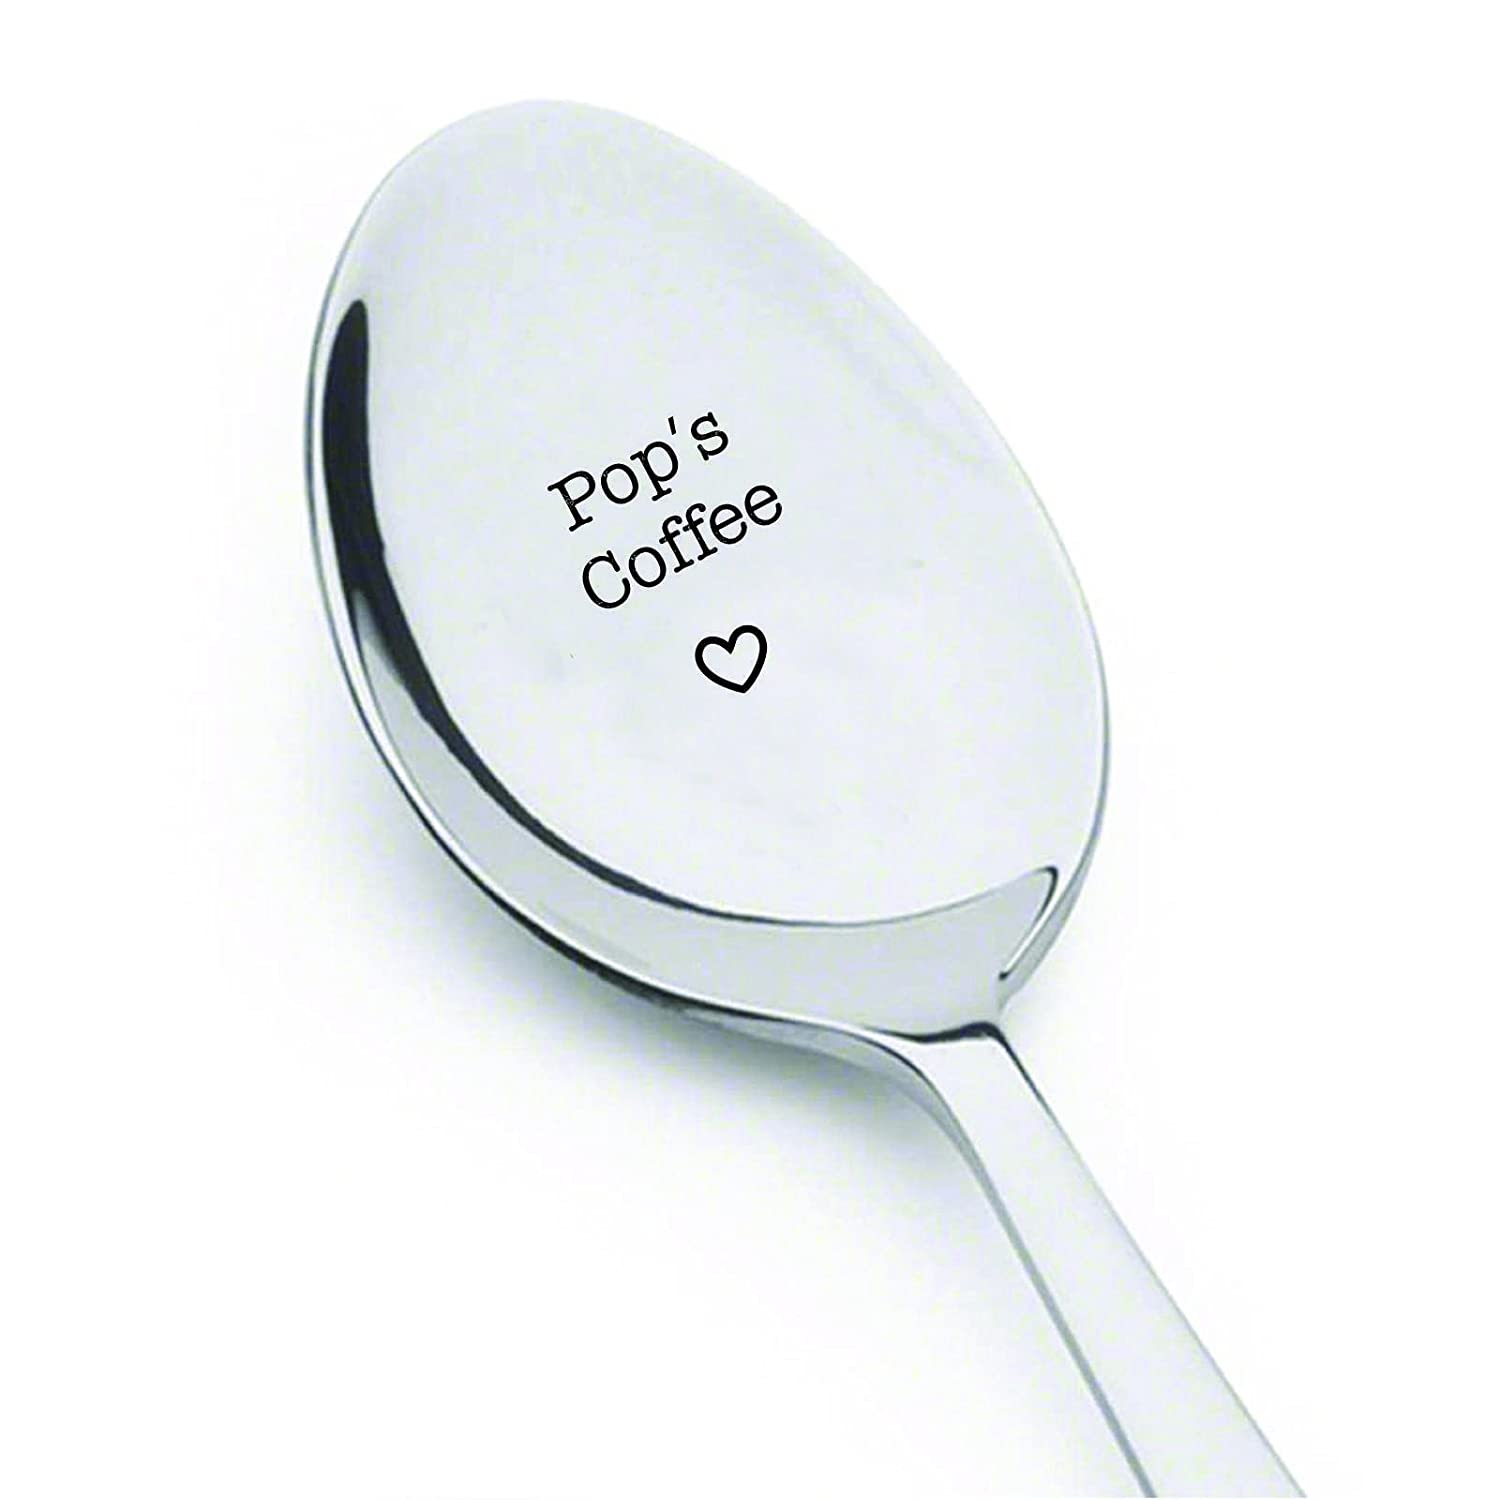 Boston creative company Fathers Day Gift Fathers Day Spoon Grandfather Gifts Personalized Gift for Pop engraved Spoon Grandpa Gifts Gifts for Pop Pops Coffee Spoon Fathers Day Present